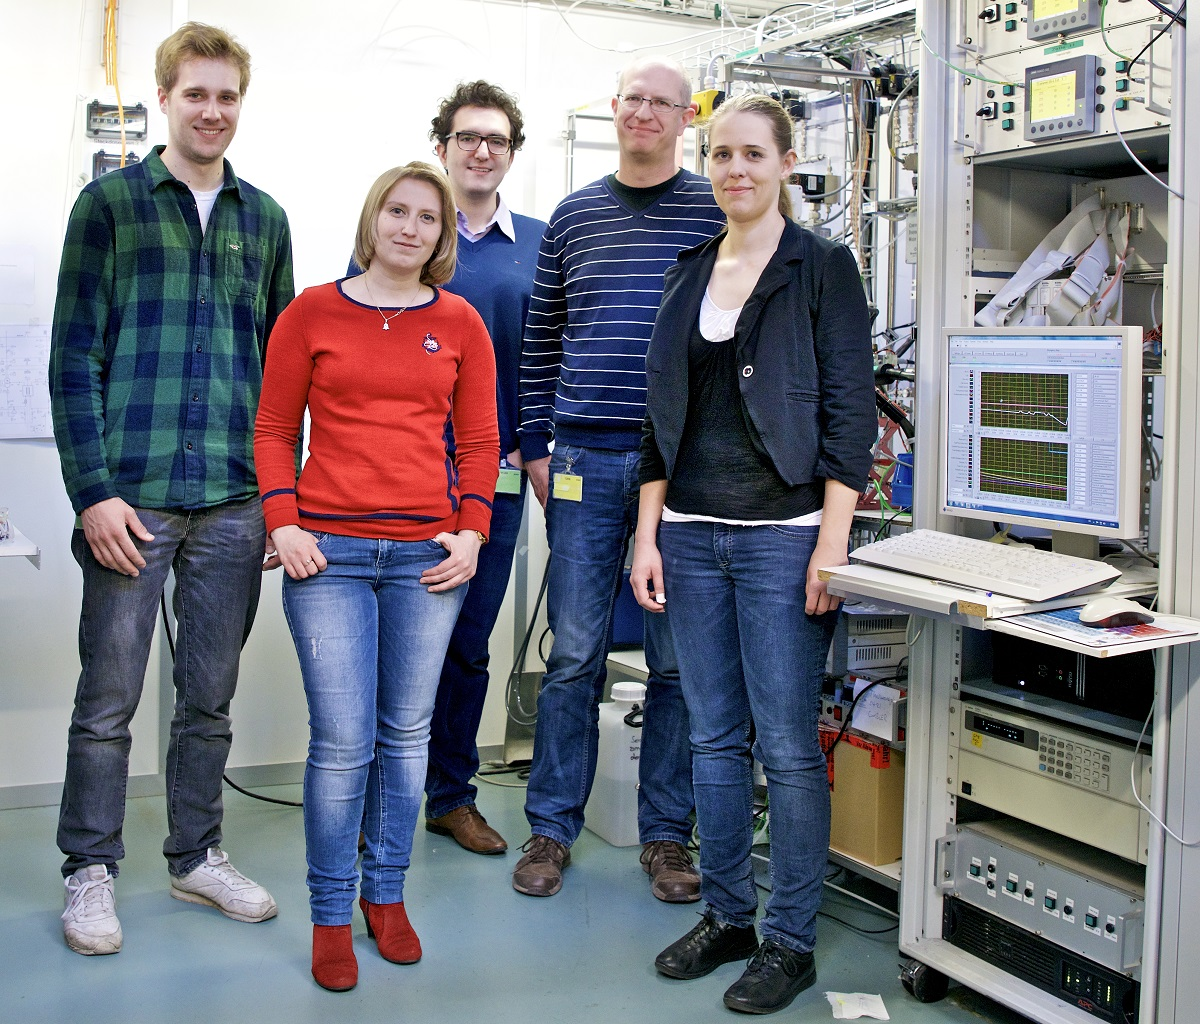 Membranes & Electrochemical Cells research group in front of fuel cell test bench.